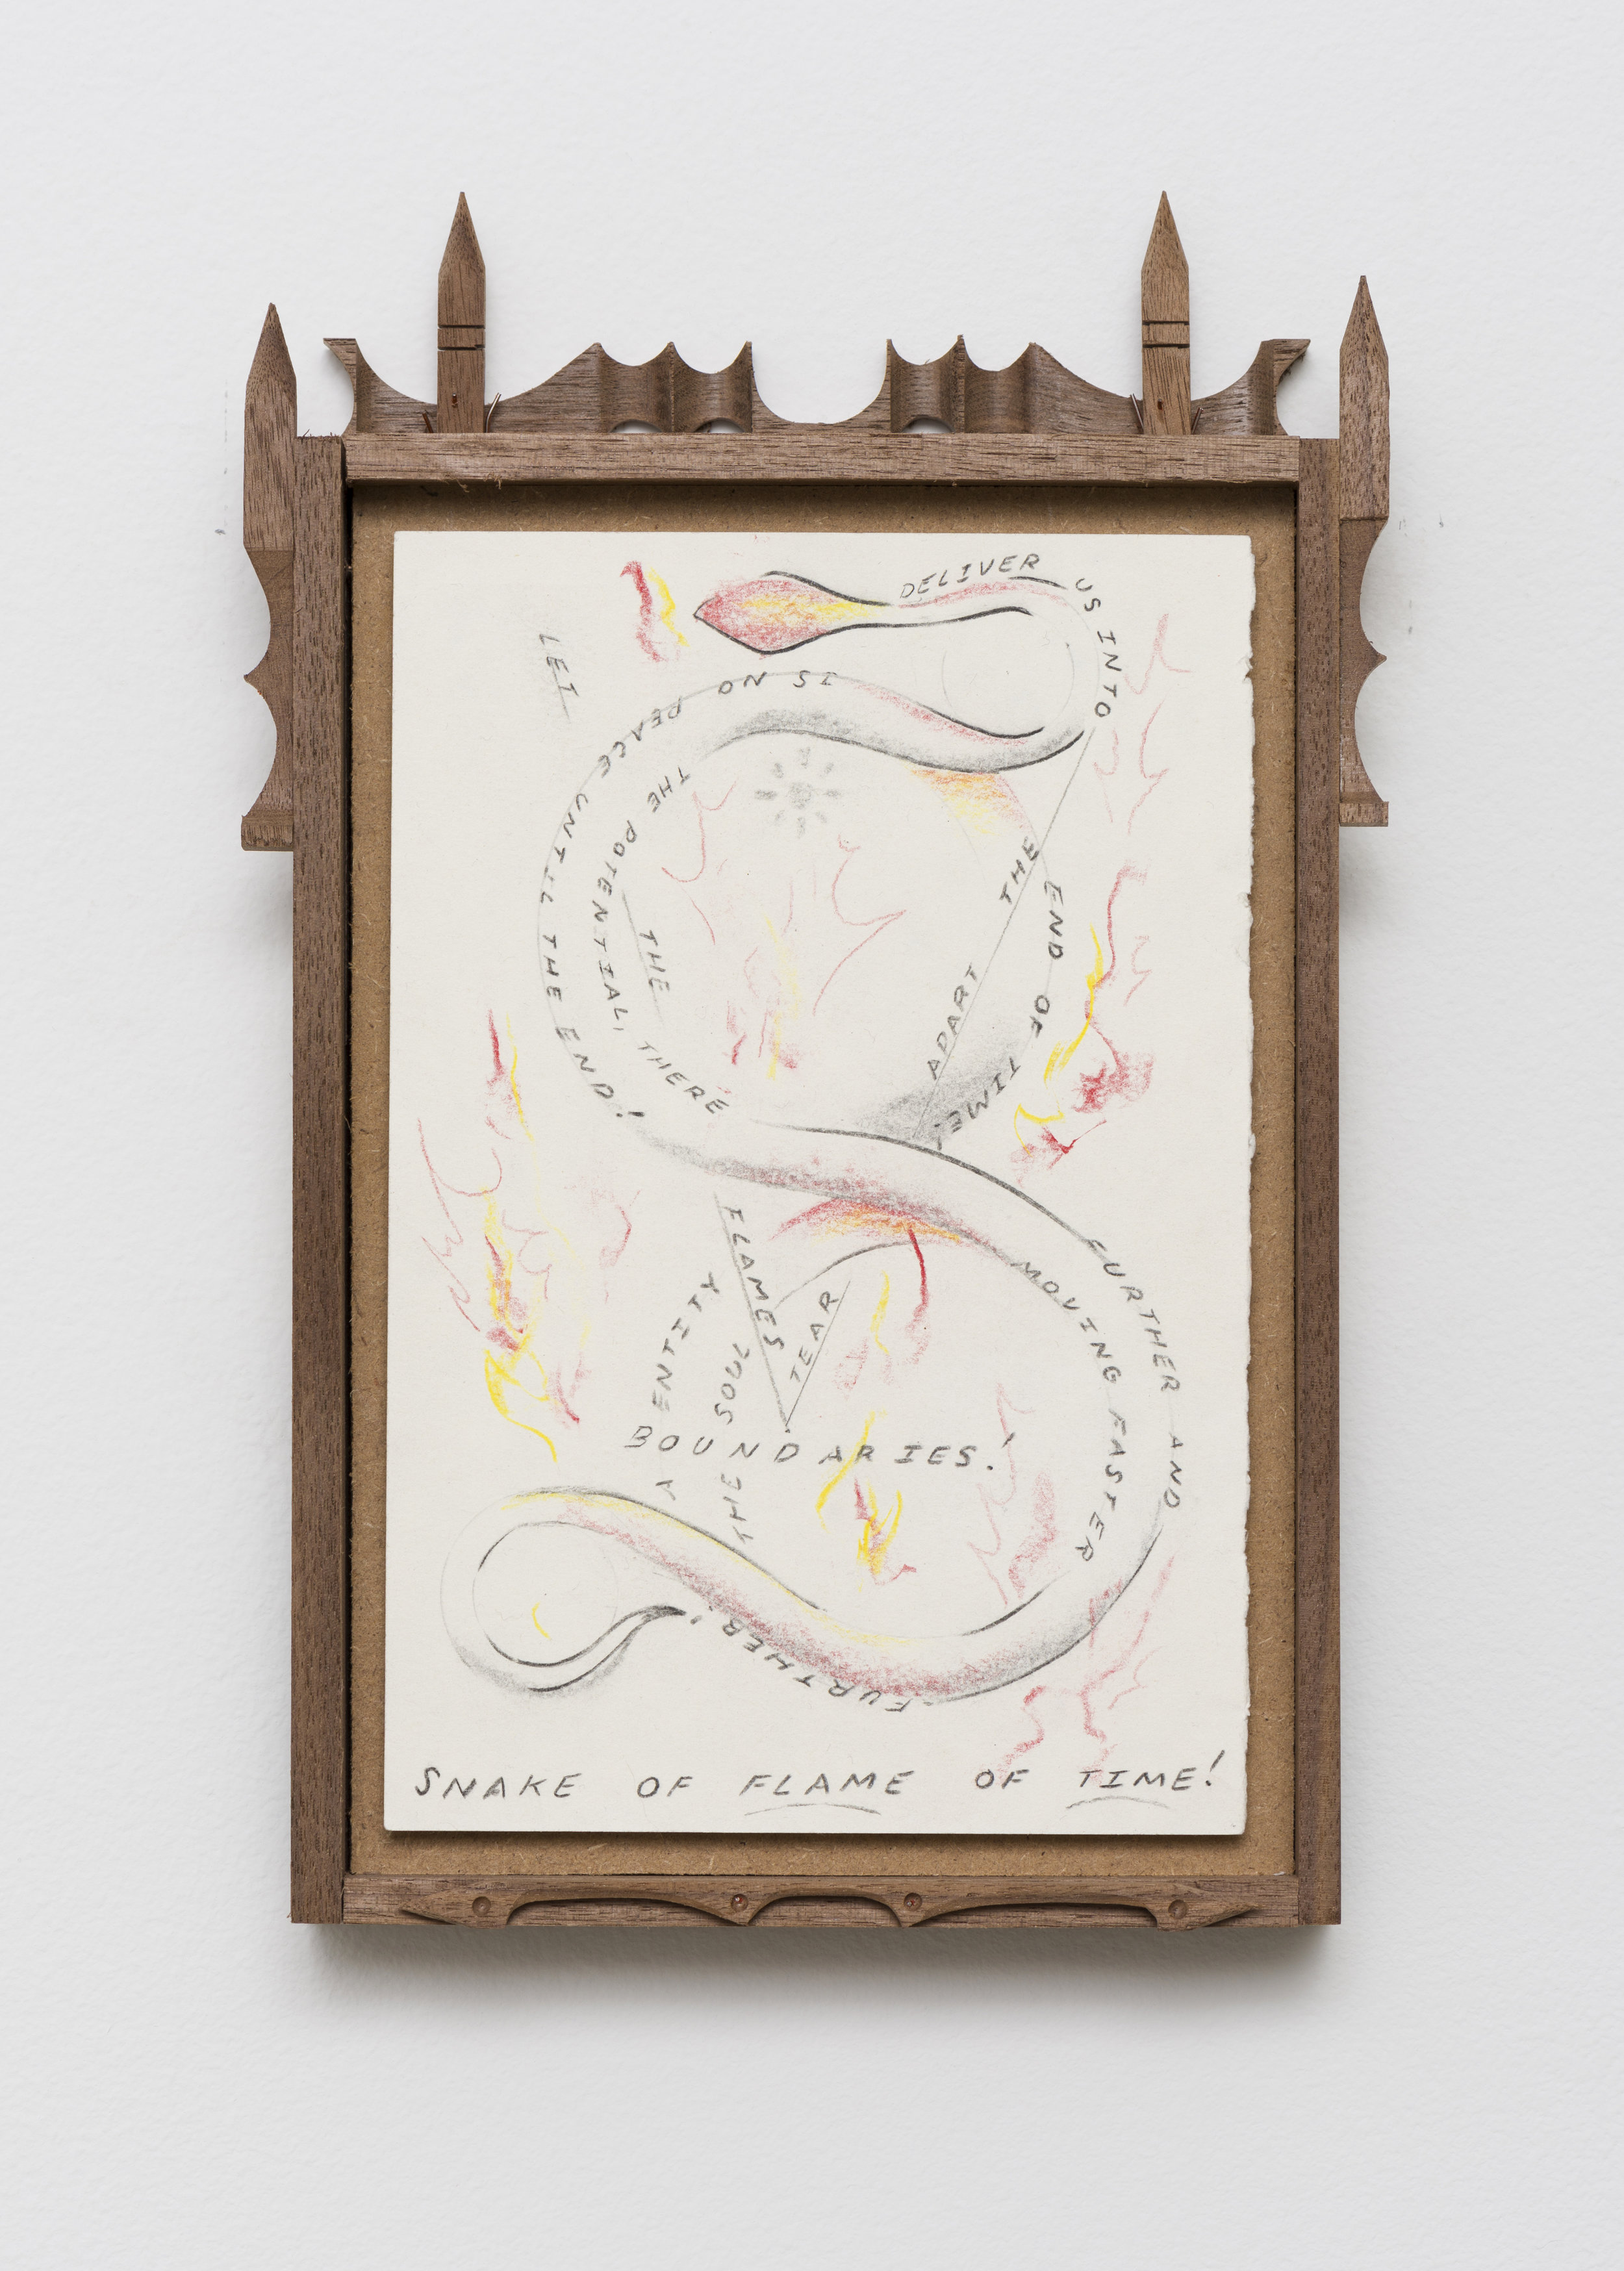 Harry Gould Harvey IV  Lost in a Combustible Ether in the Flames of TIme   2019 Pencil on paper, carved walnut frame 11 x 6.75 in